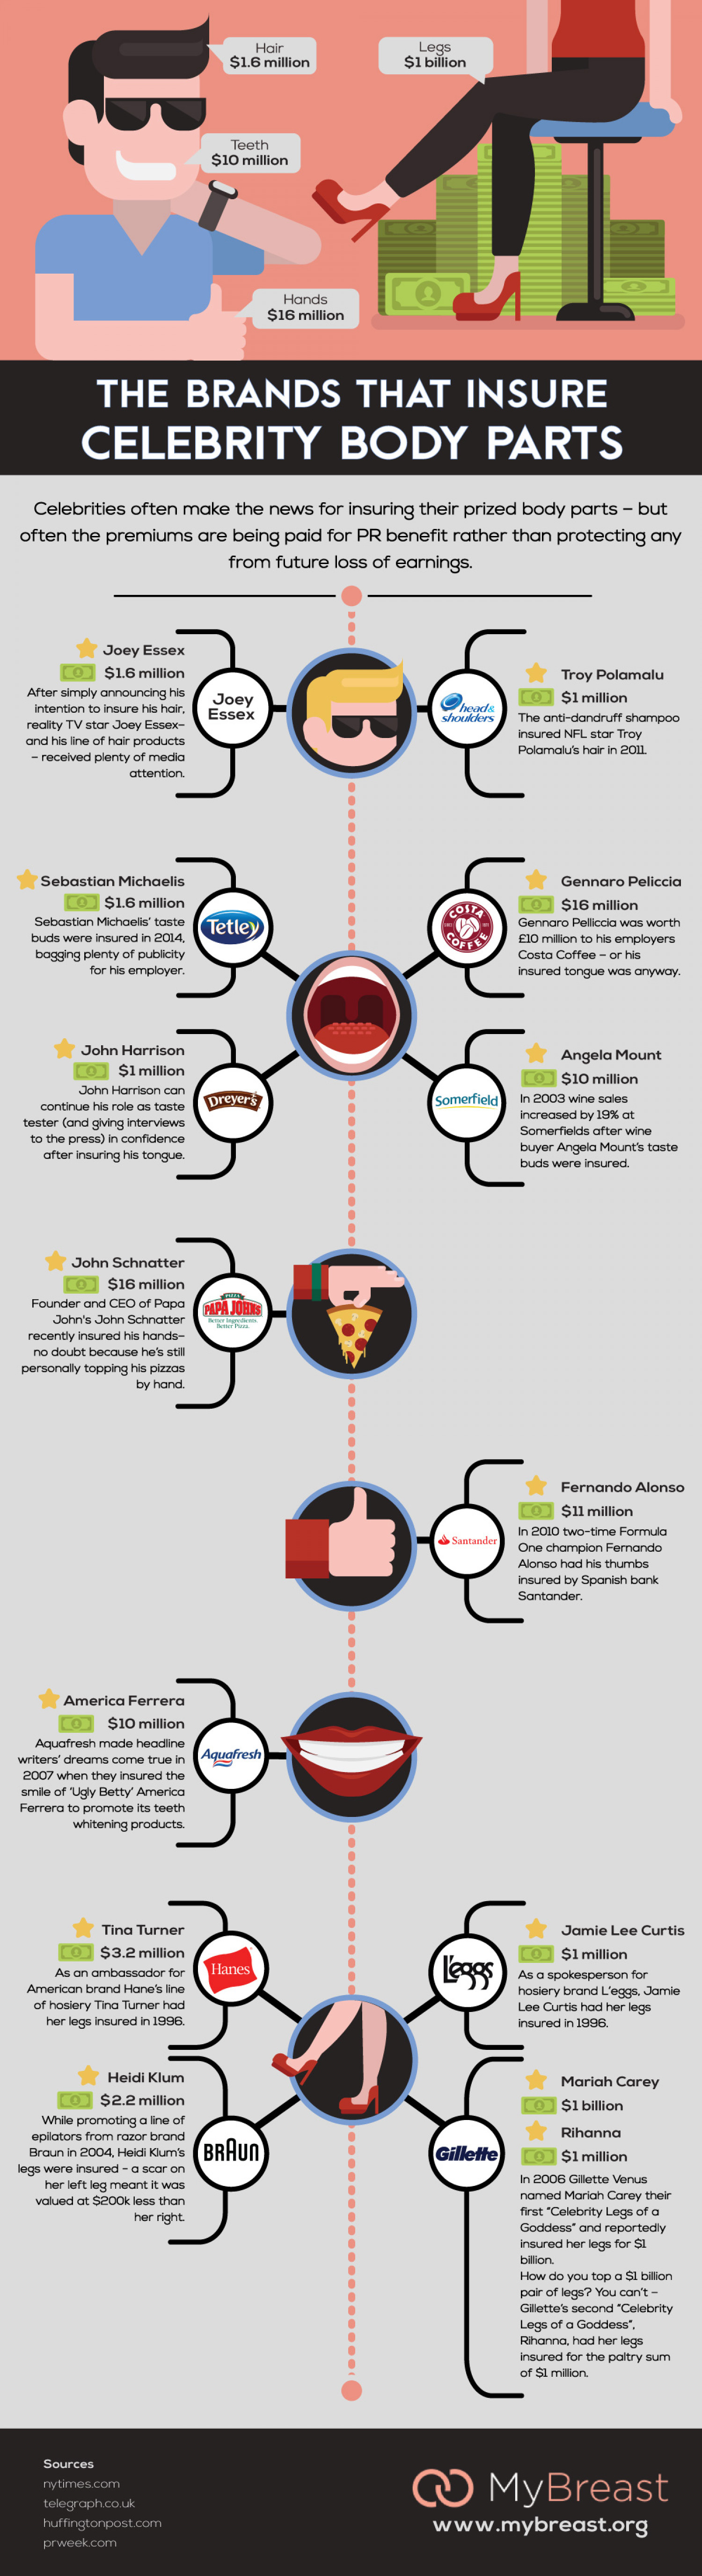 The Brands That Insure Celebrity Body Parts Infographic